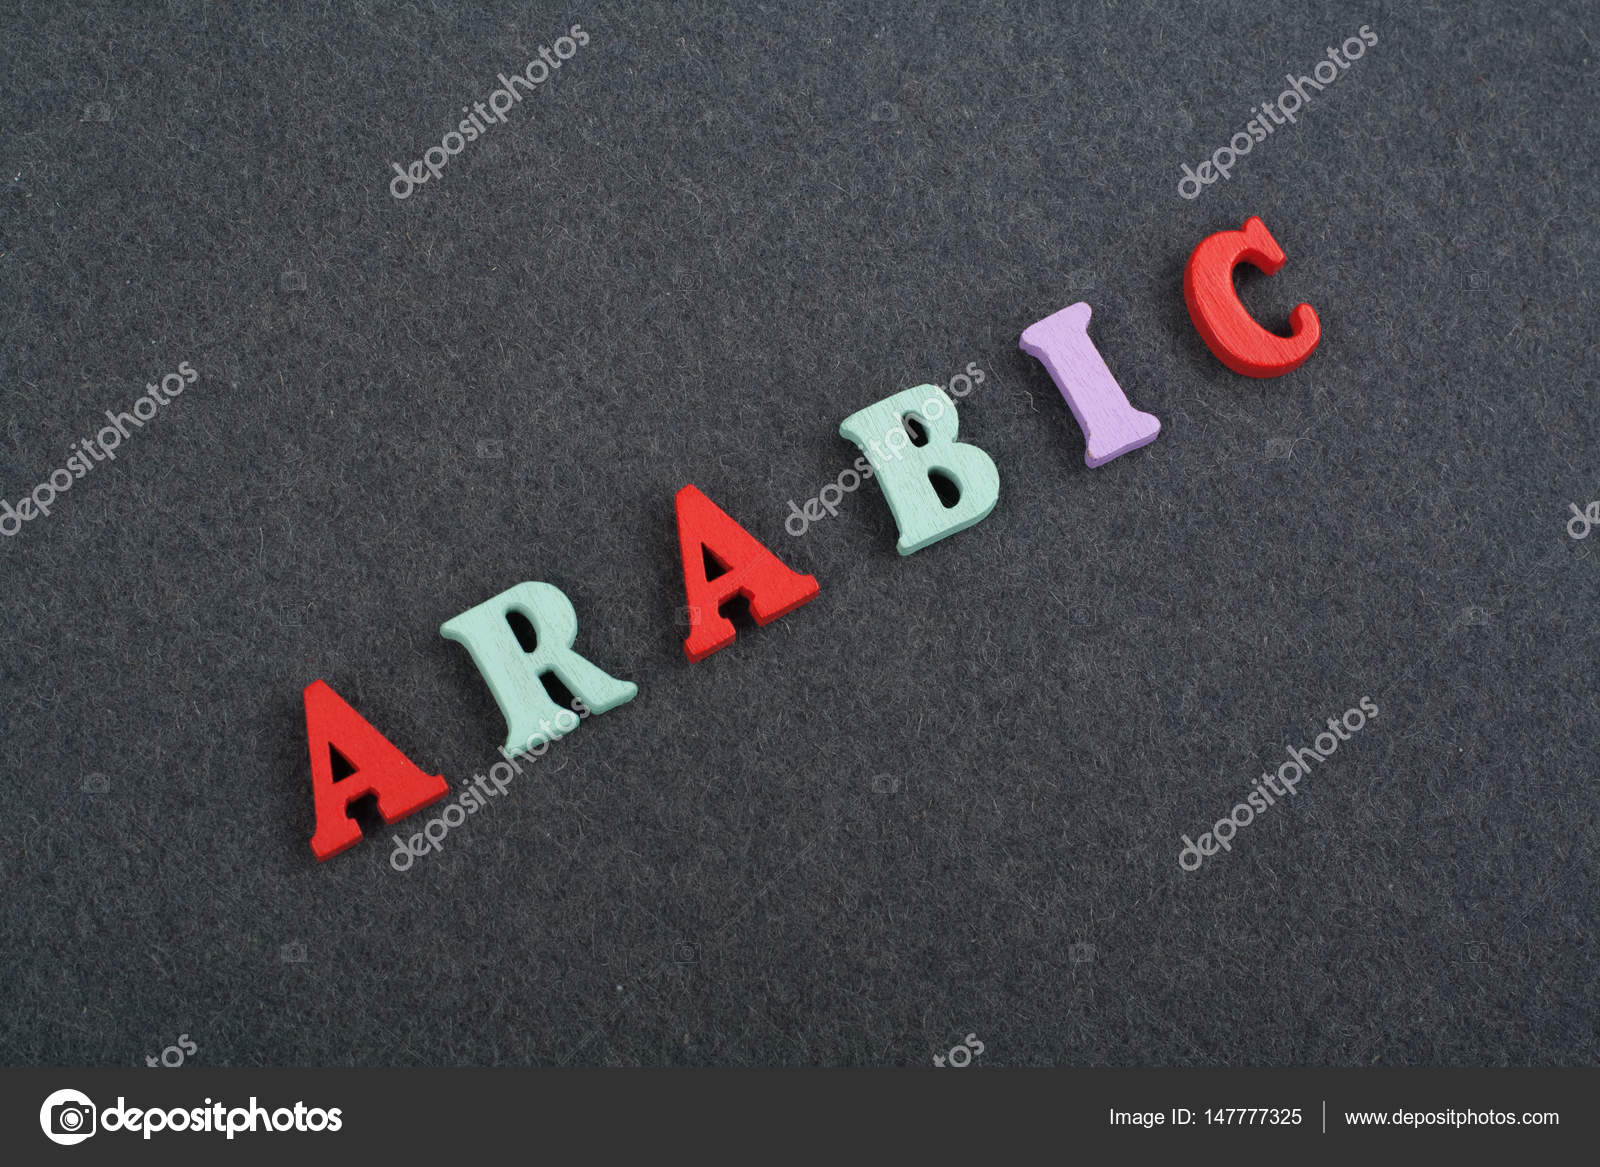 ARABIC word on black board background composed from colorful abc